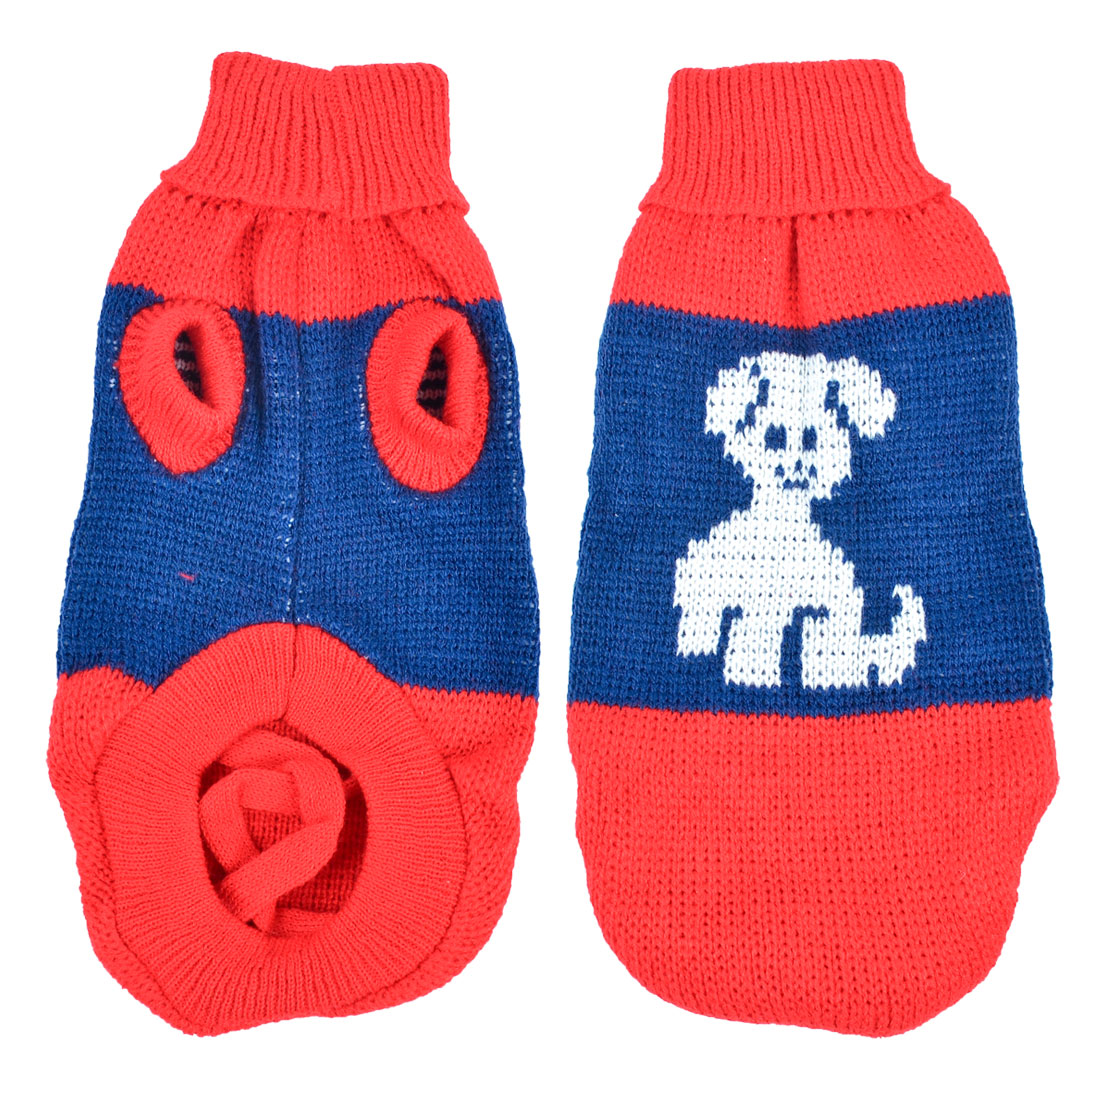 Warm Turtleneck Dog Print Knitted Coat Chihuaha Dog Sweater Clothes Red Blue M